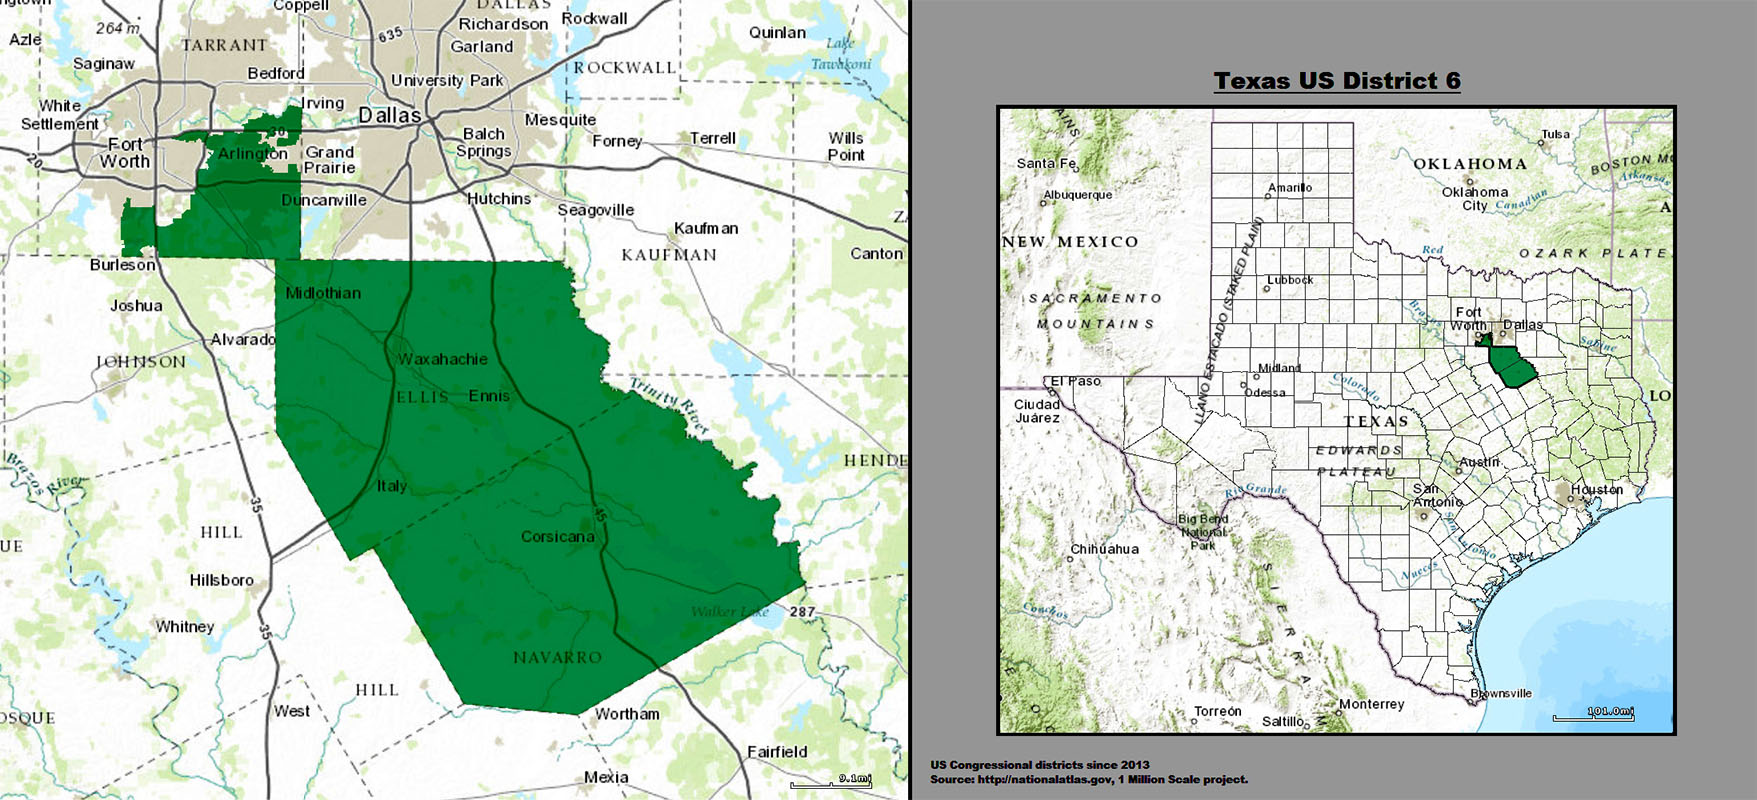 TX-06; a small triangle in the northwest barely touches the corner of a larger rectangle to the southeast